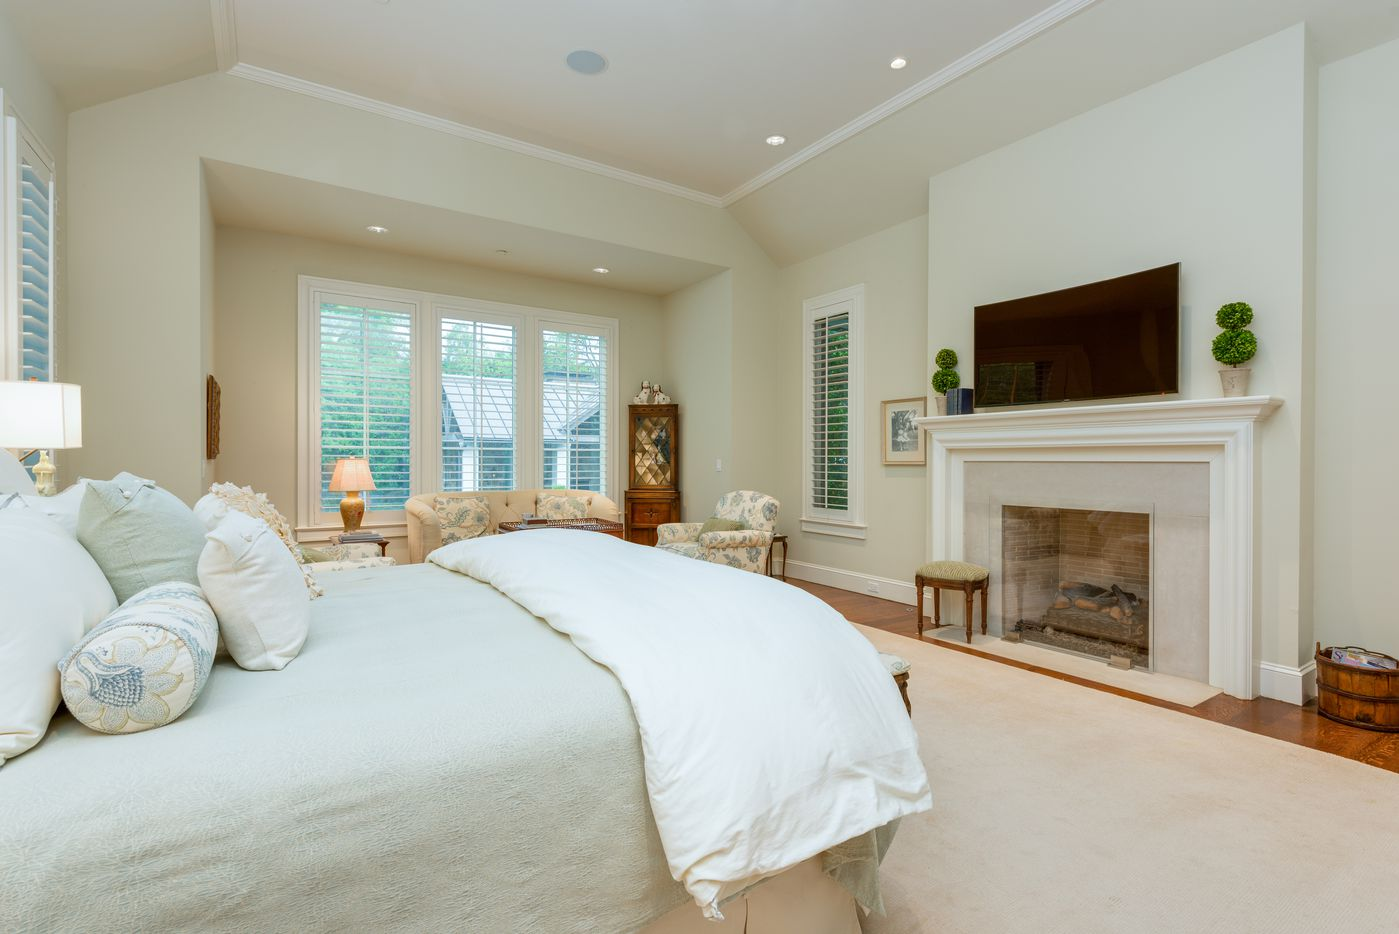 Take a look at the home at 5722 Park Lane in Dallas.